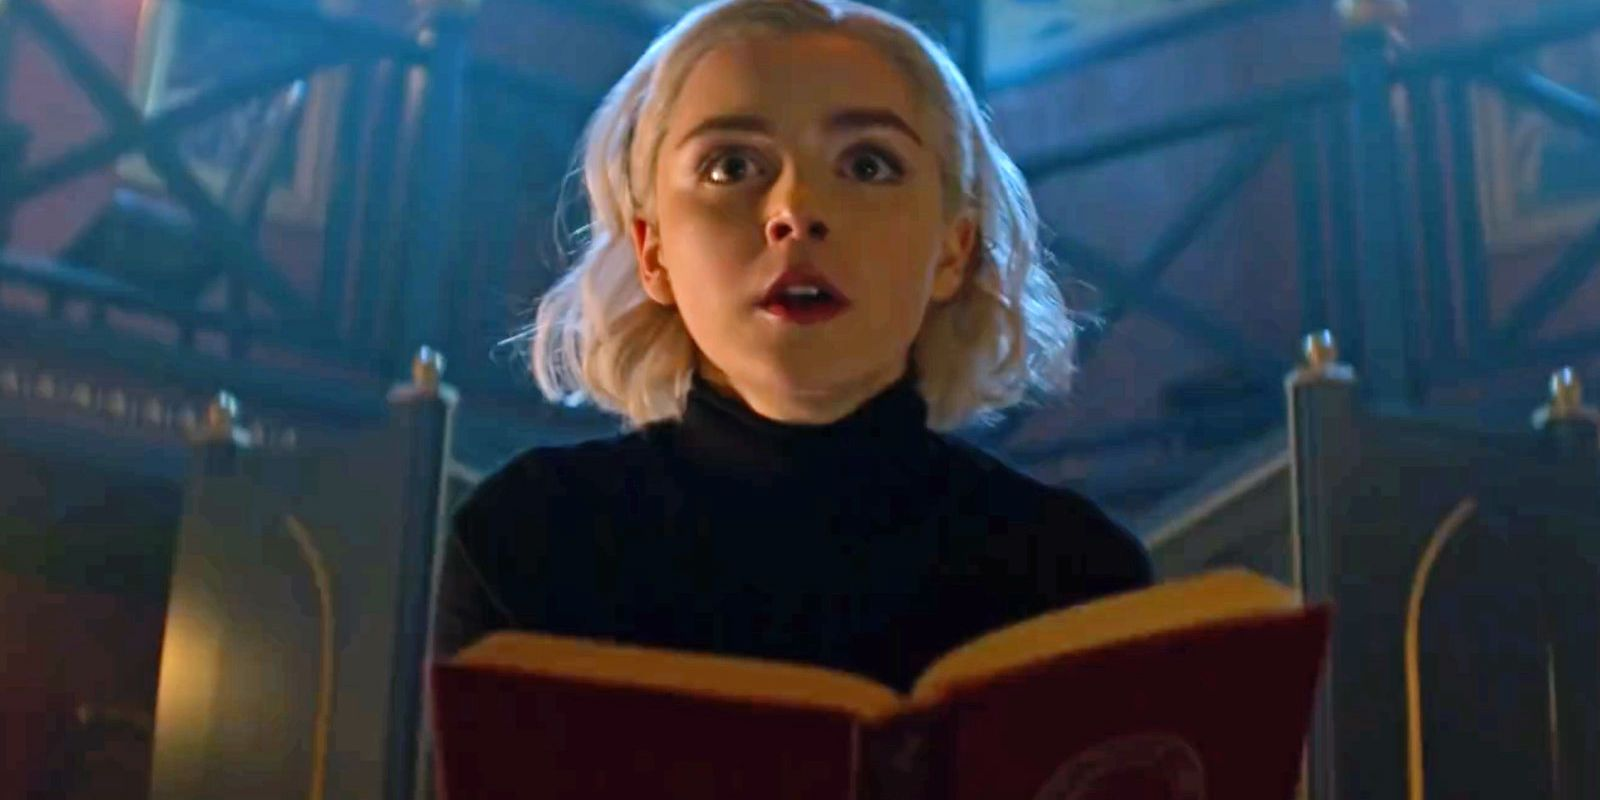 Netflix Renews Chilling Adventures Of Sabrina For Seasons